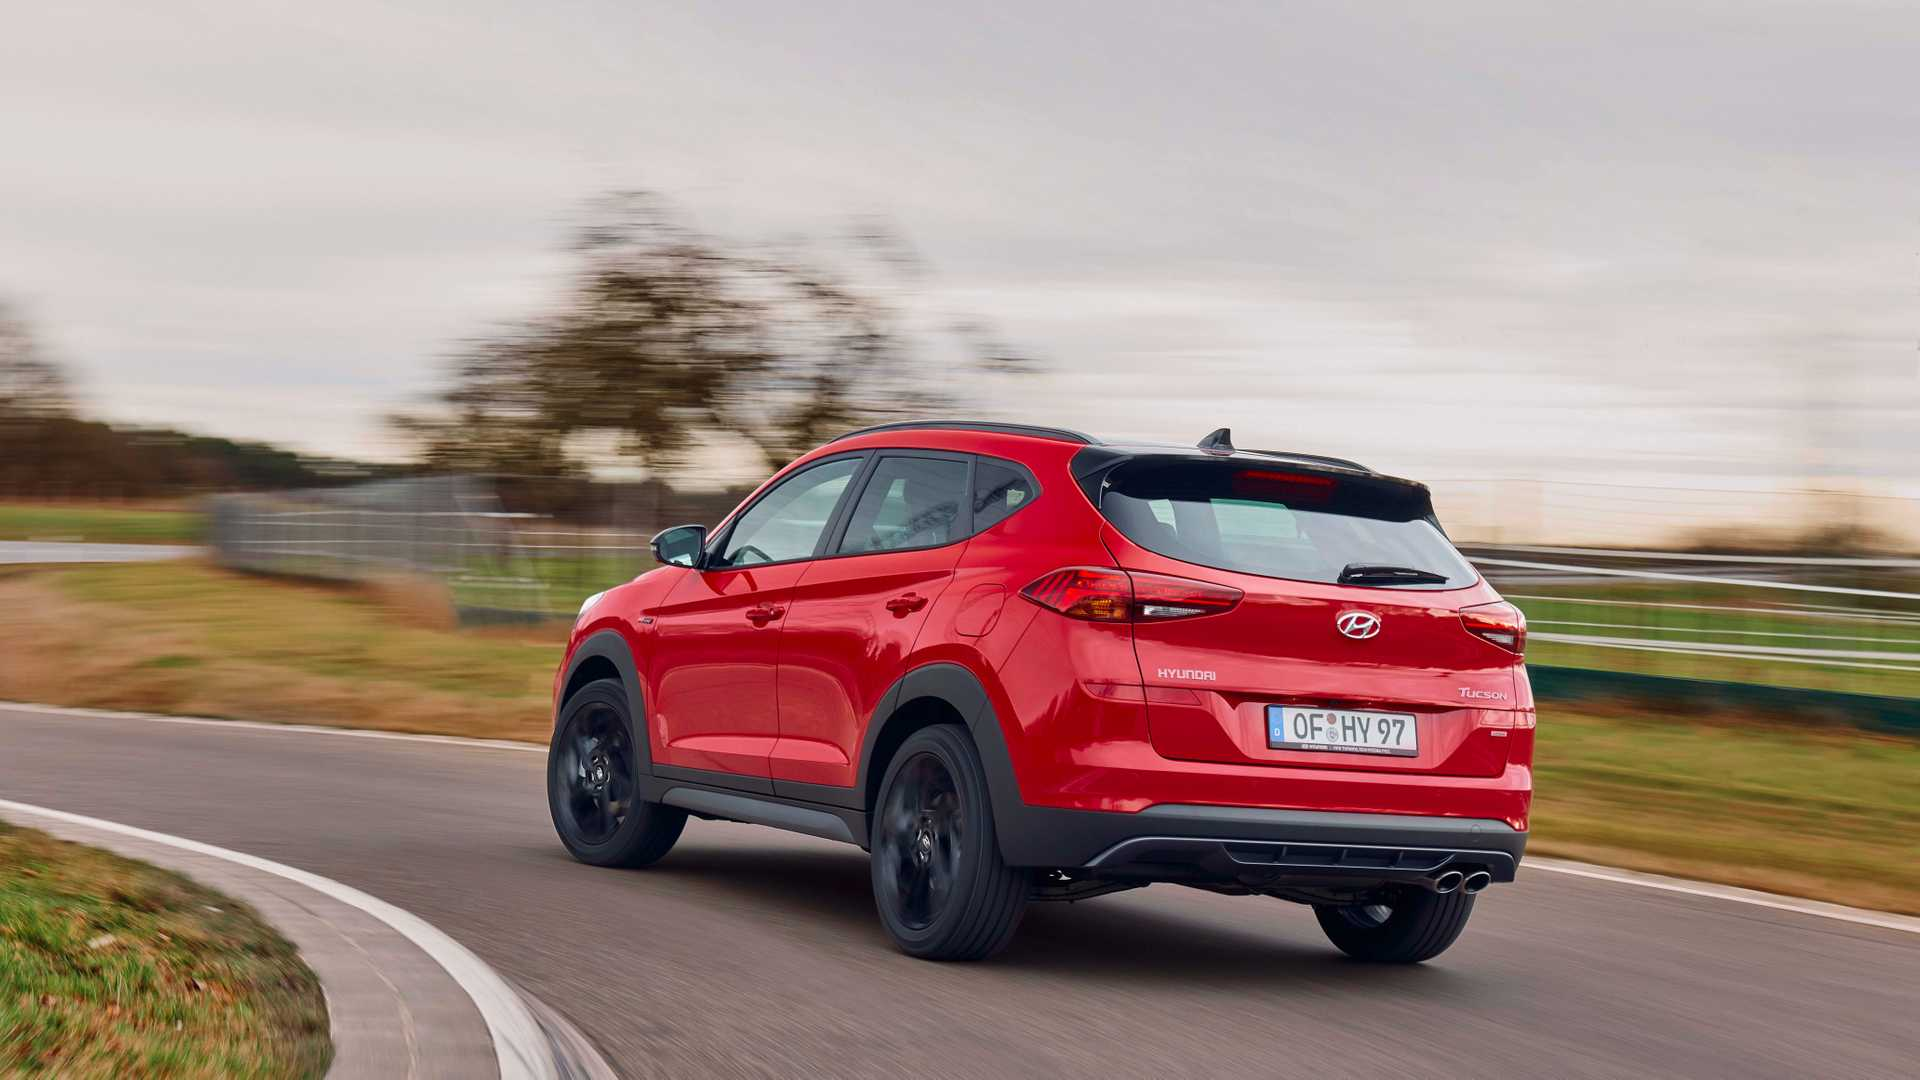 43 Concept of Hyundai Tucson N Line 2020 Release Date with Hyundai Tucson N Line 2020